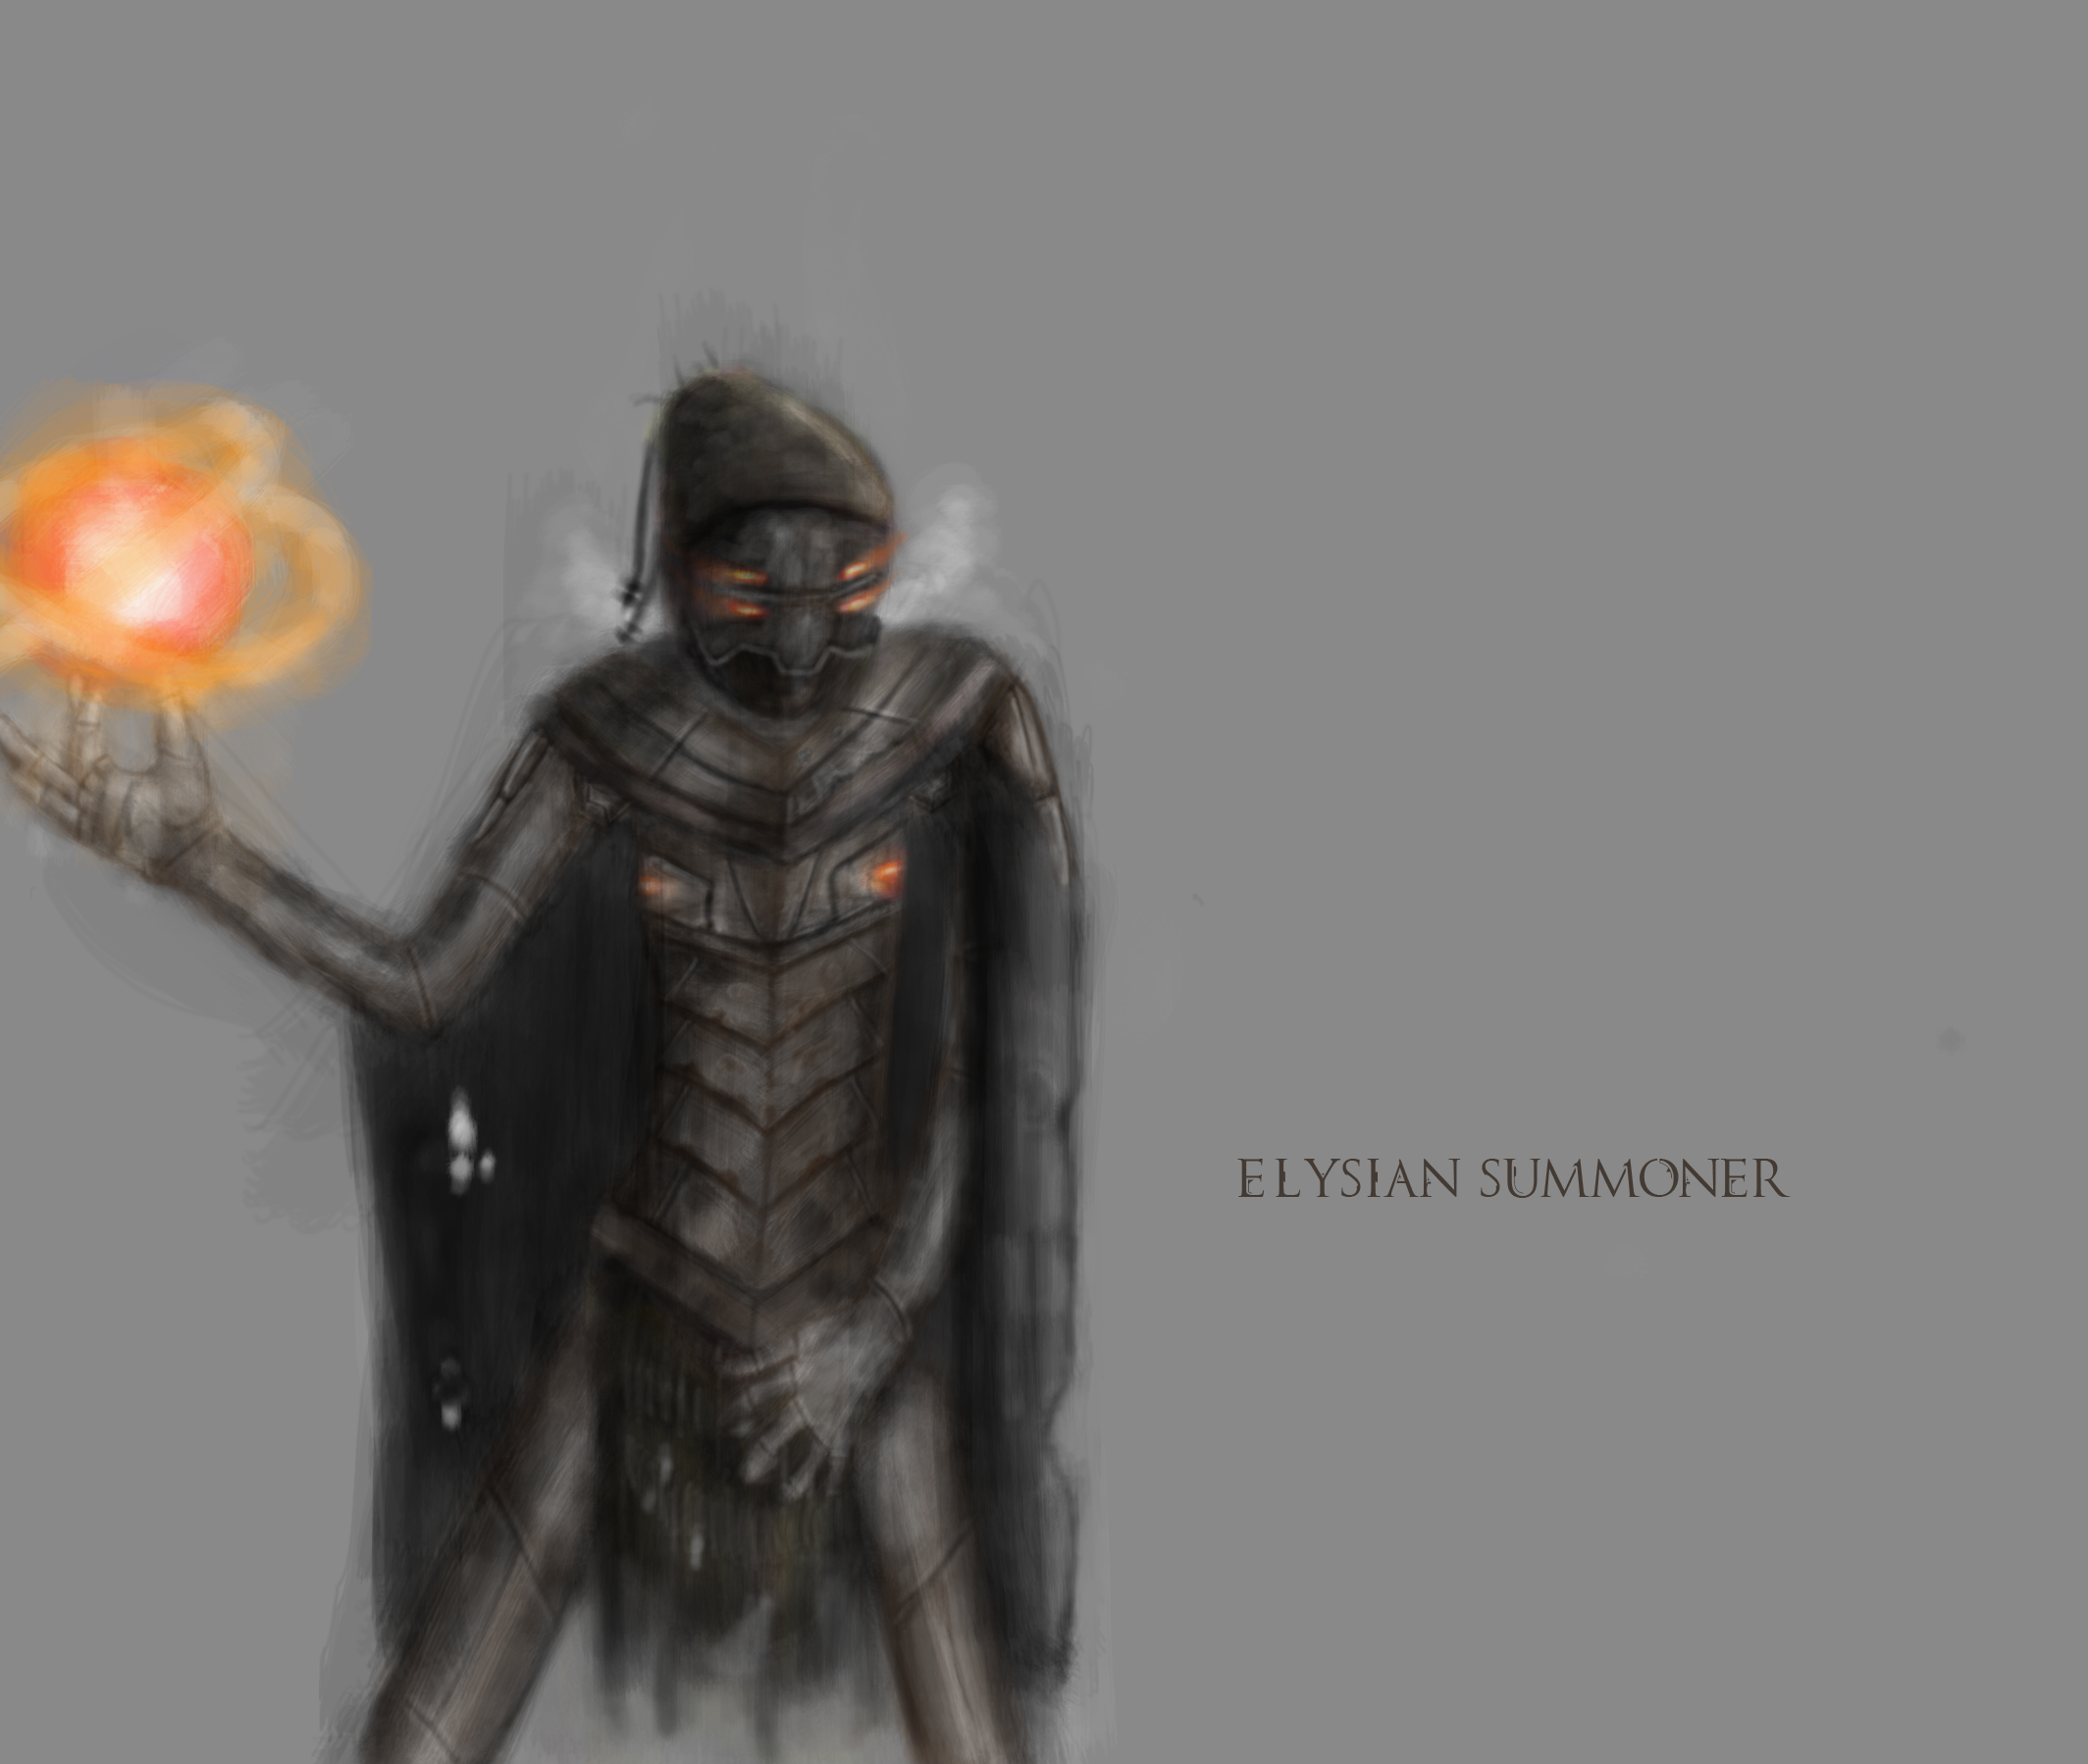 The Elysian Summoner